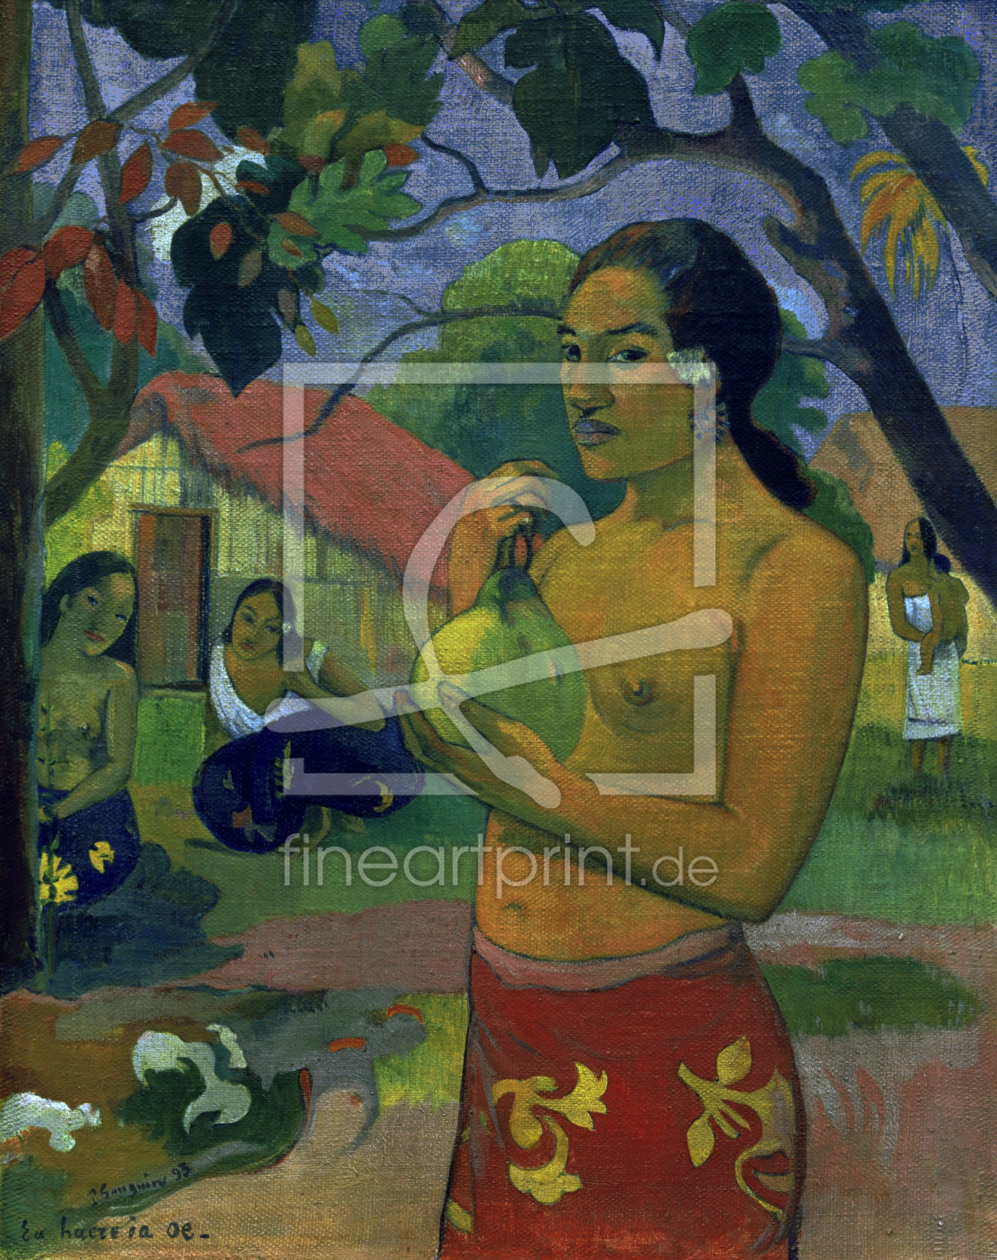 Bild-Nr.: 30000624 P.Gauguin / Where are you going / 1893 erstellt von Gauguin, Paul